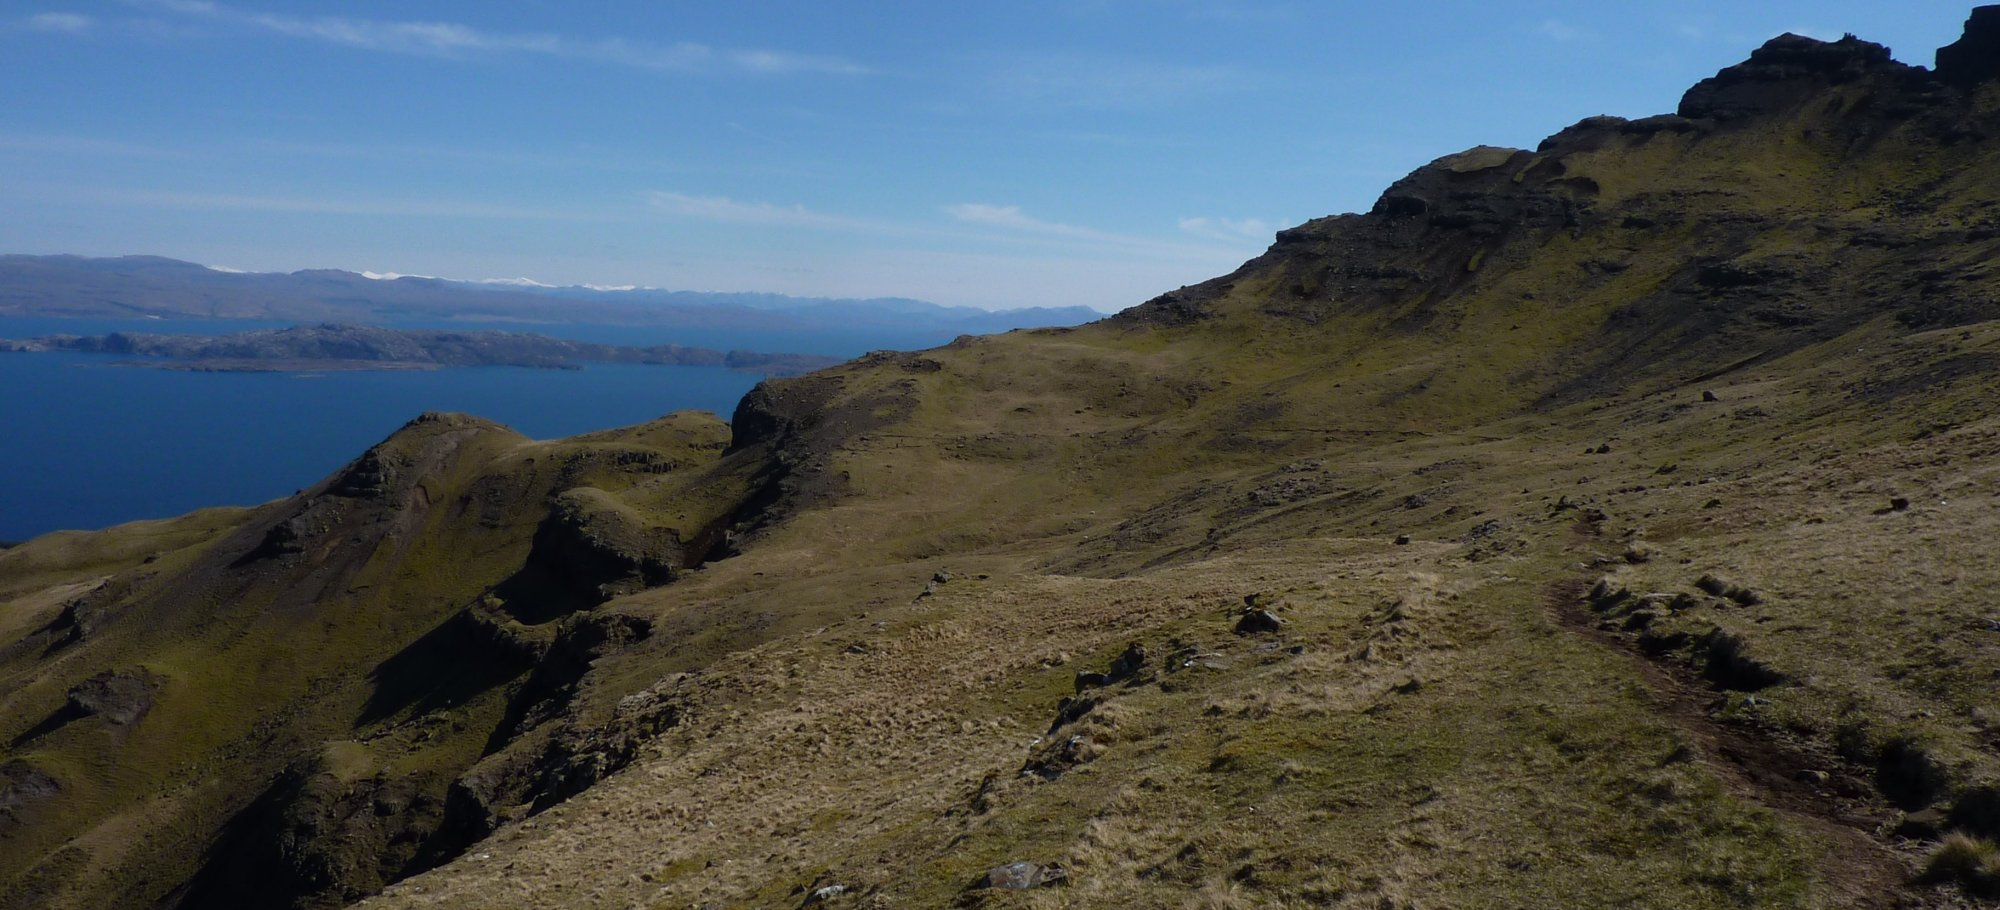 Along the excellent path beneath the Storr - the white-capped hills are over 40 miles away (Carn Eige)